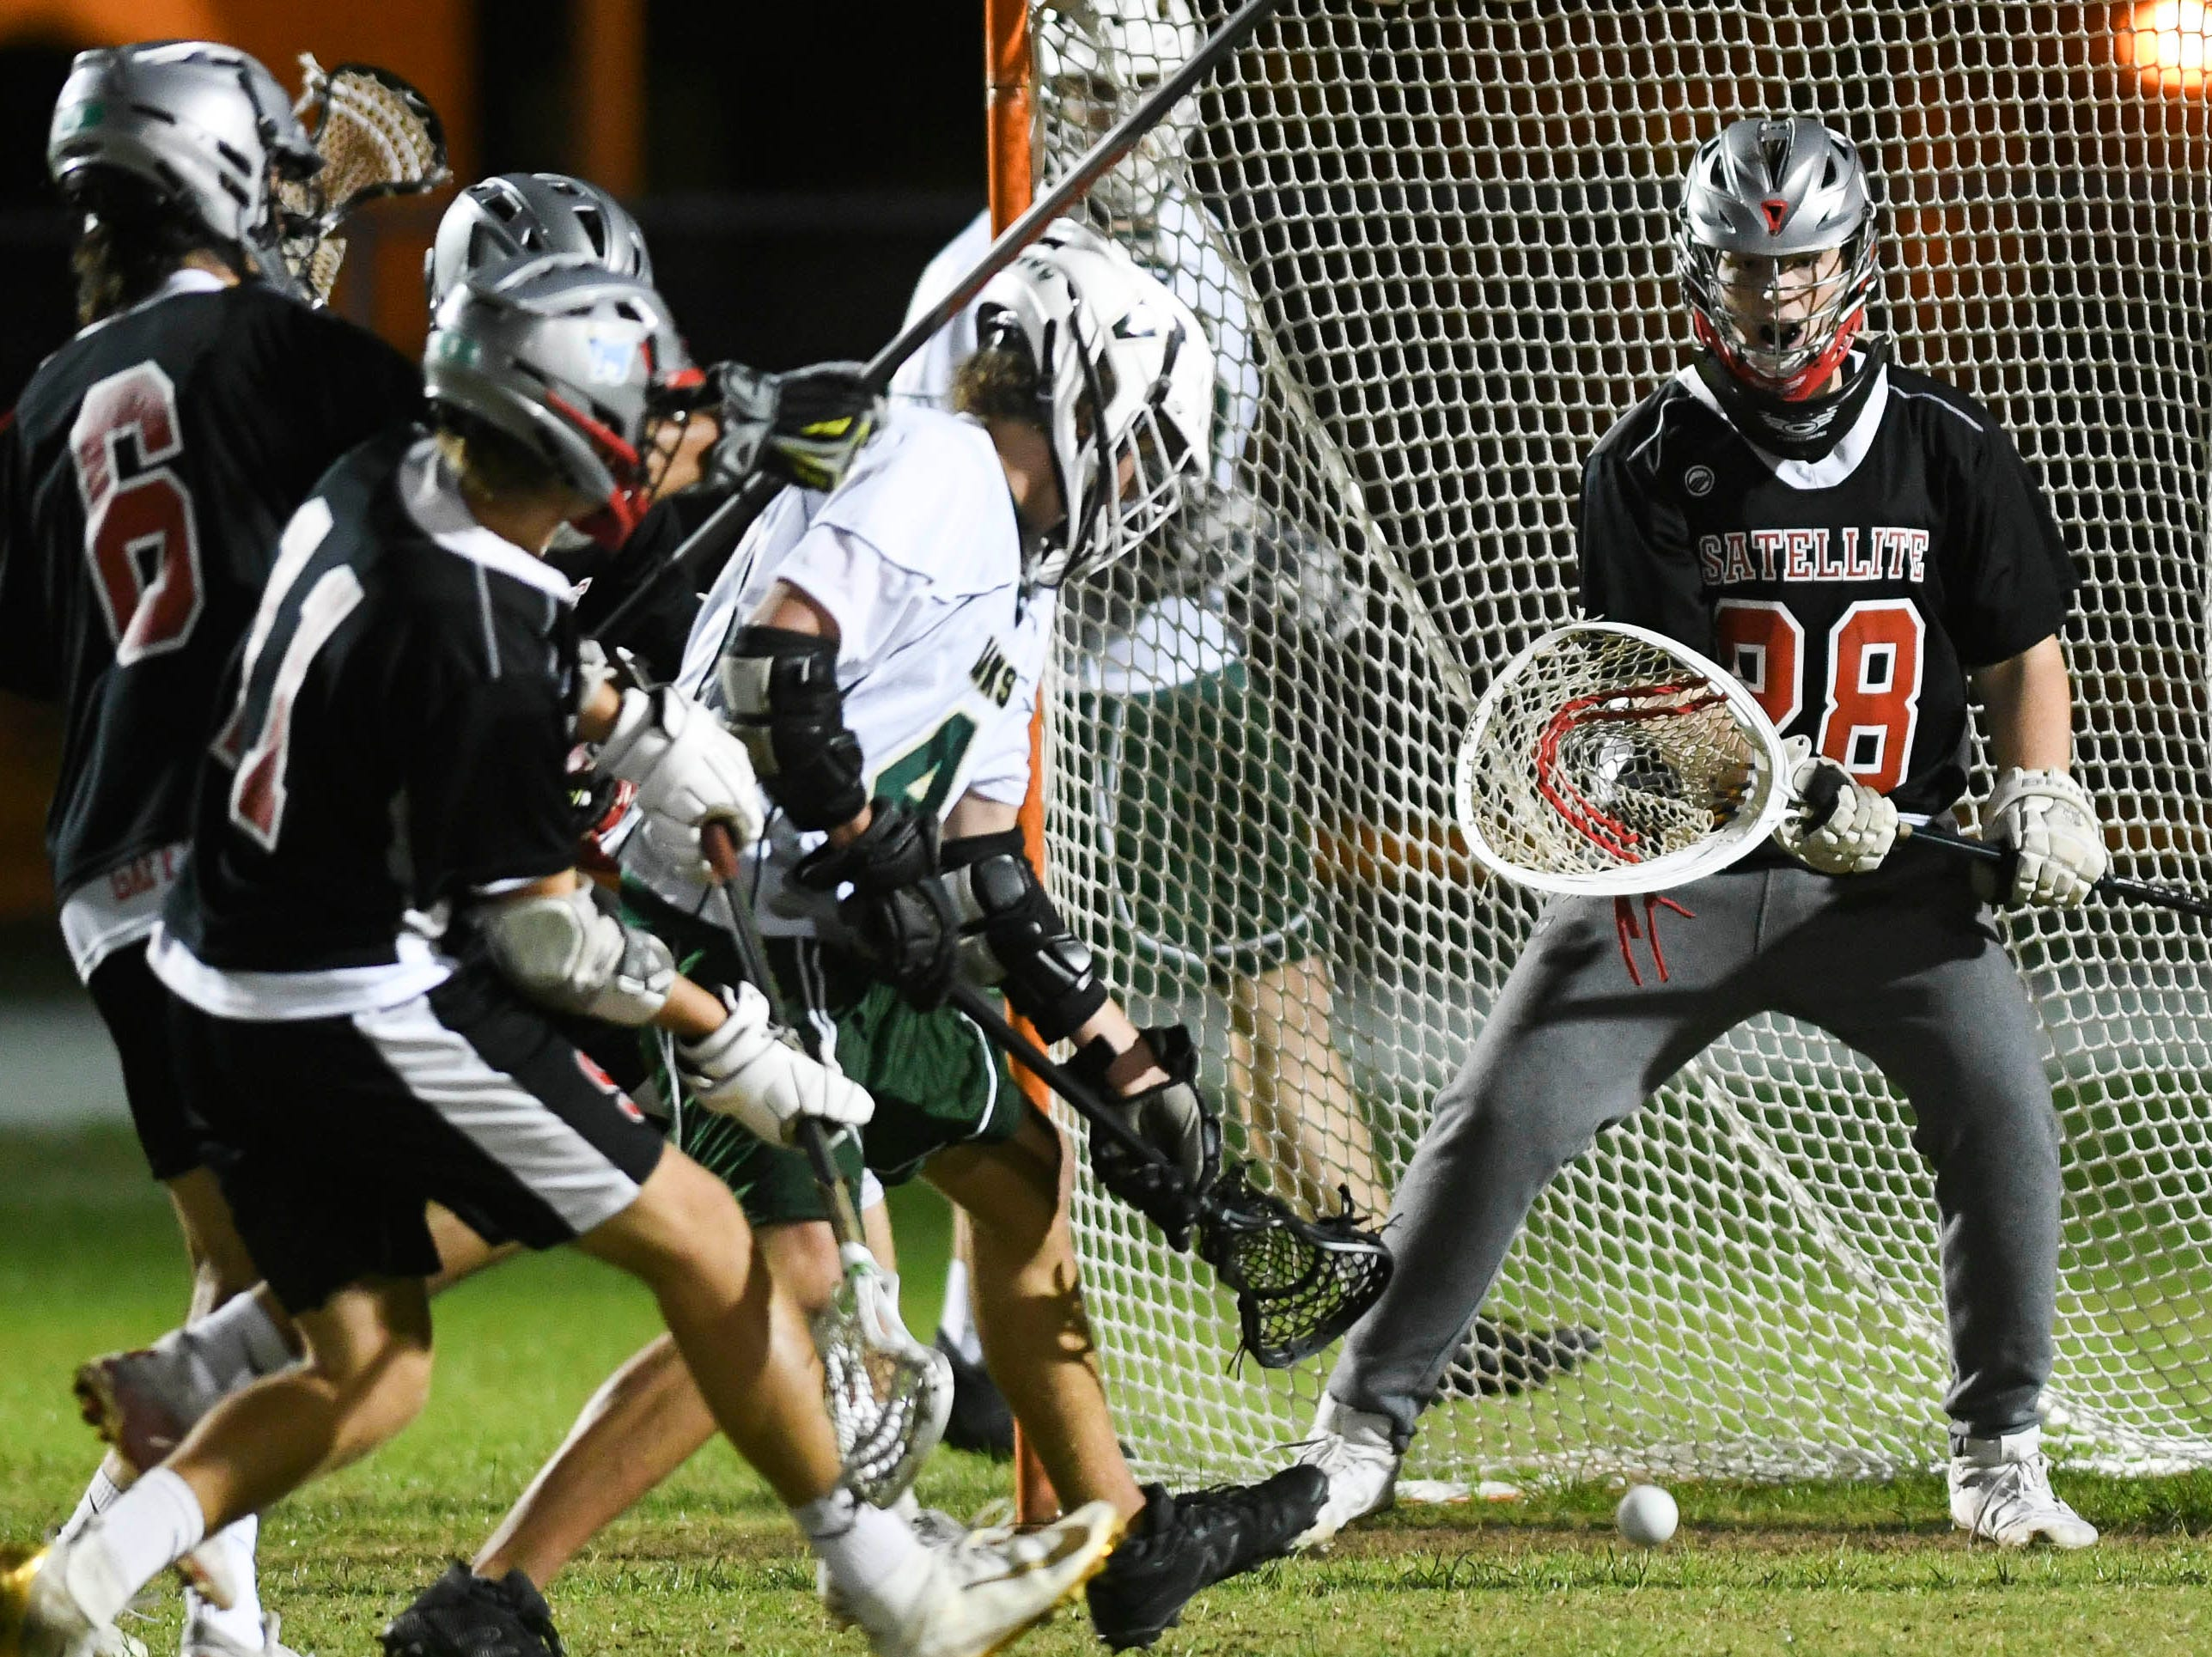 Gavin Wessell of Viera (4) takes a shot at the goal during Tuesday's game in Viera